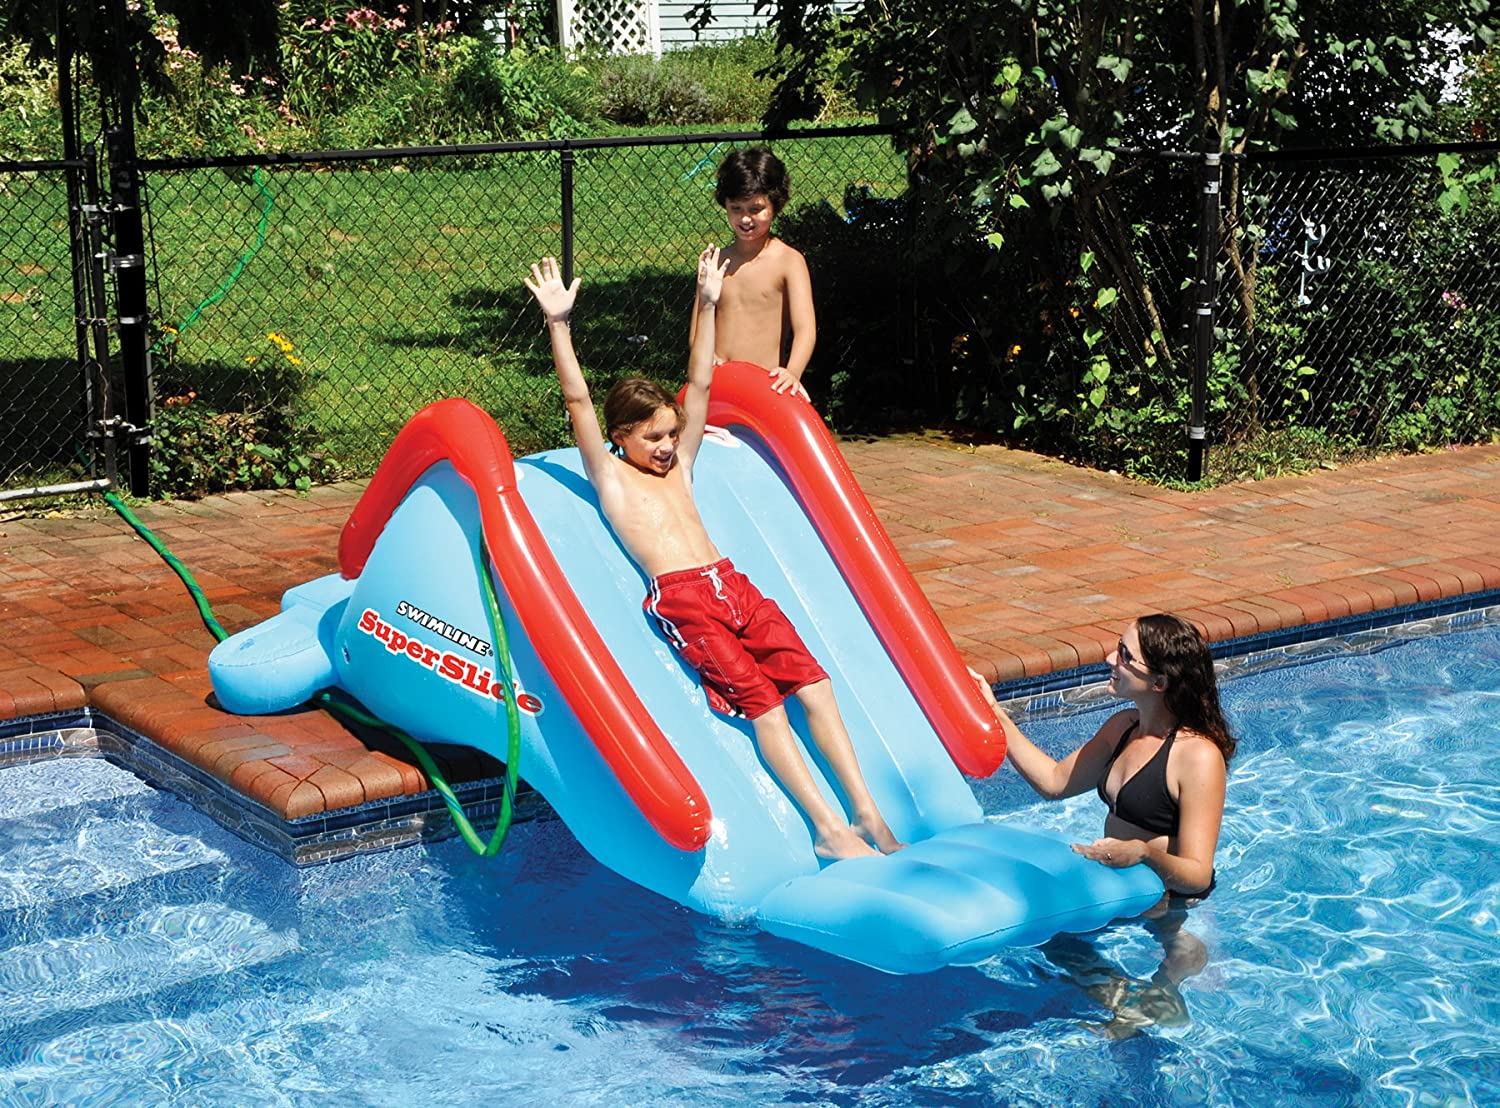 amazoncom swimline super slide inflatable pool toy garden outdoor - Inflatable Pool Slide